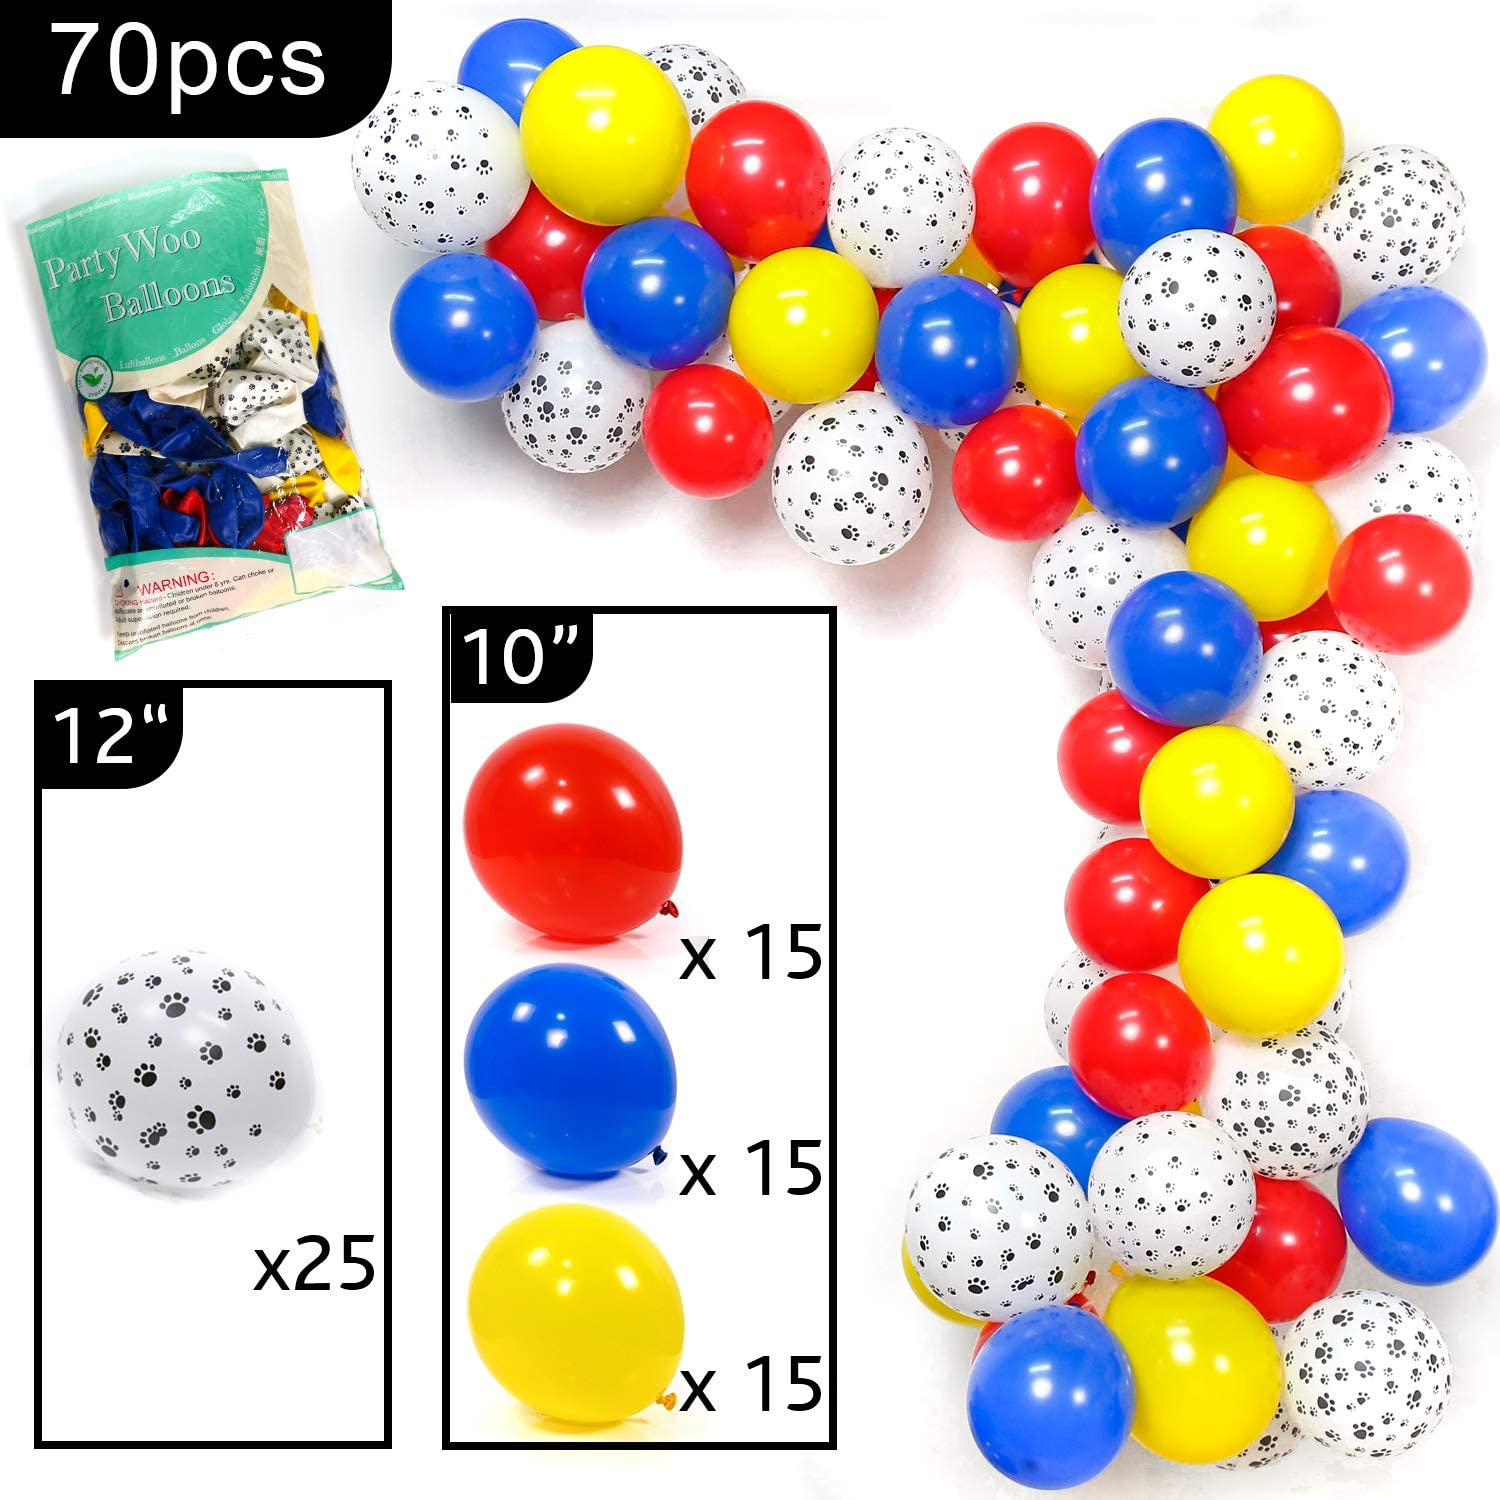 PartyWoo Paw Patrol Balloons Paw Balloons for Paw Patrol Party Decorations 70 pcs 12 inch Blue Red Yellow balloons Paw Print Balloons Toy Story Party Decorations Dog Birthday Paw Patrol Birthday